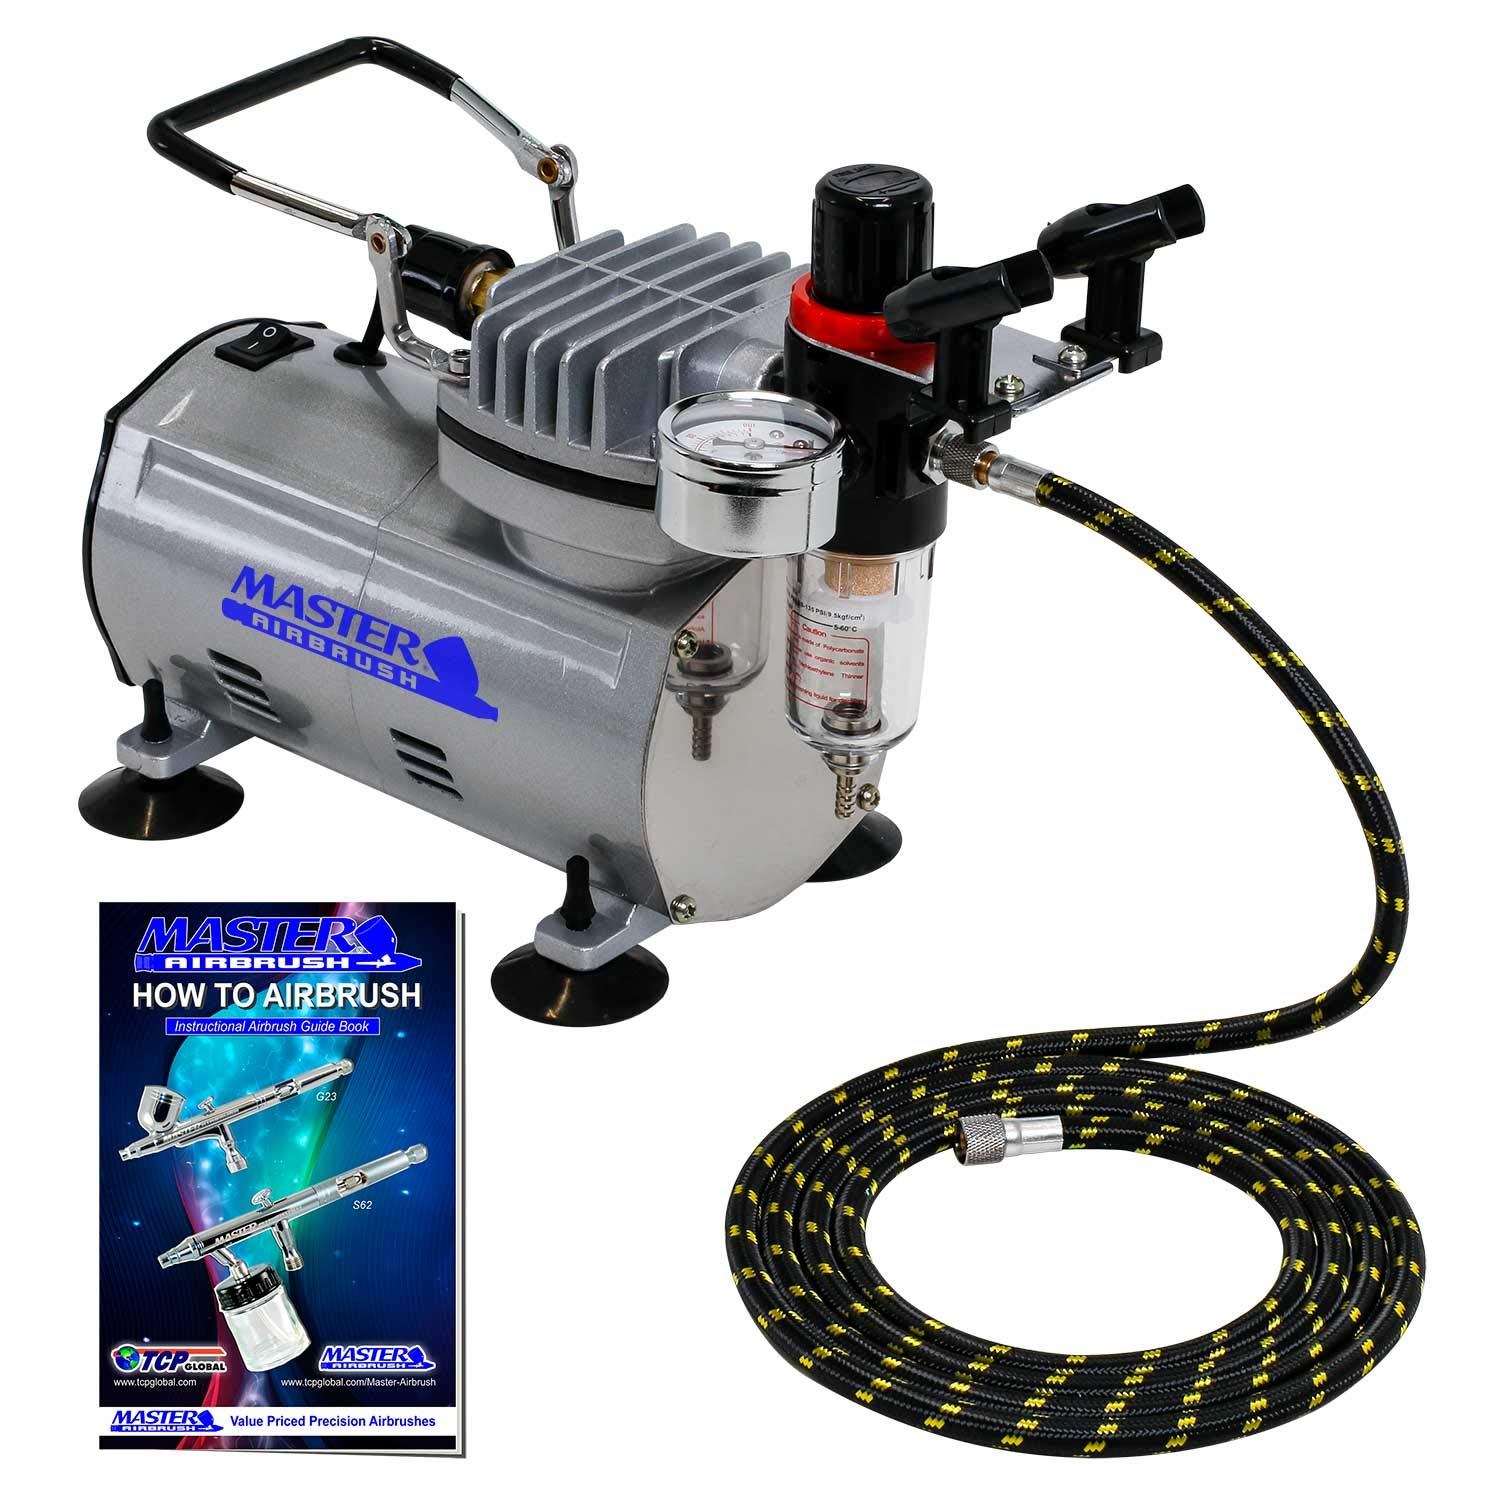 Master Airbrush Compressor with Water Trap and Regulator, Now Includes a  (FREE) 6 Foot Airbrush Hose and a (FREE) How to Airbrush Training Book to  Get